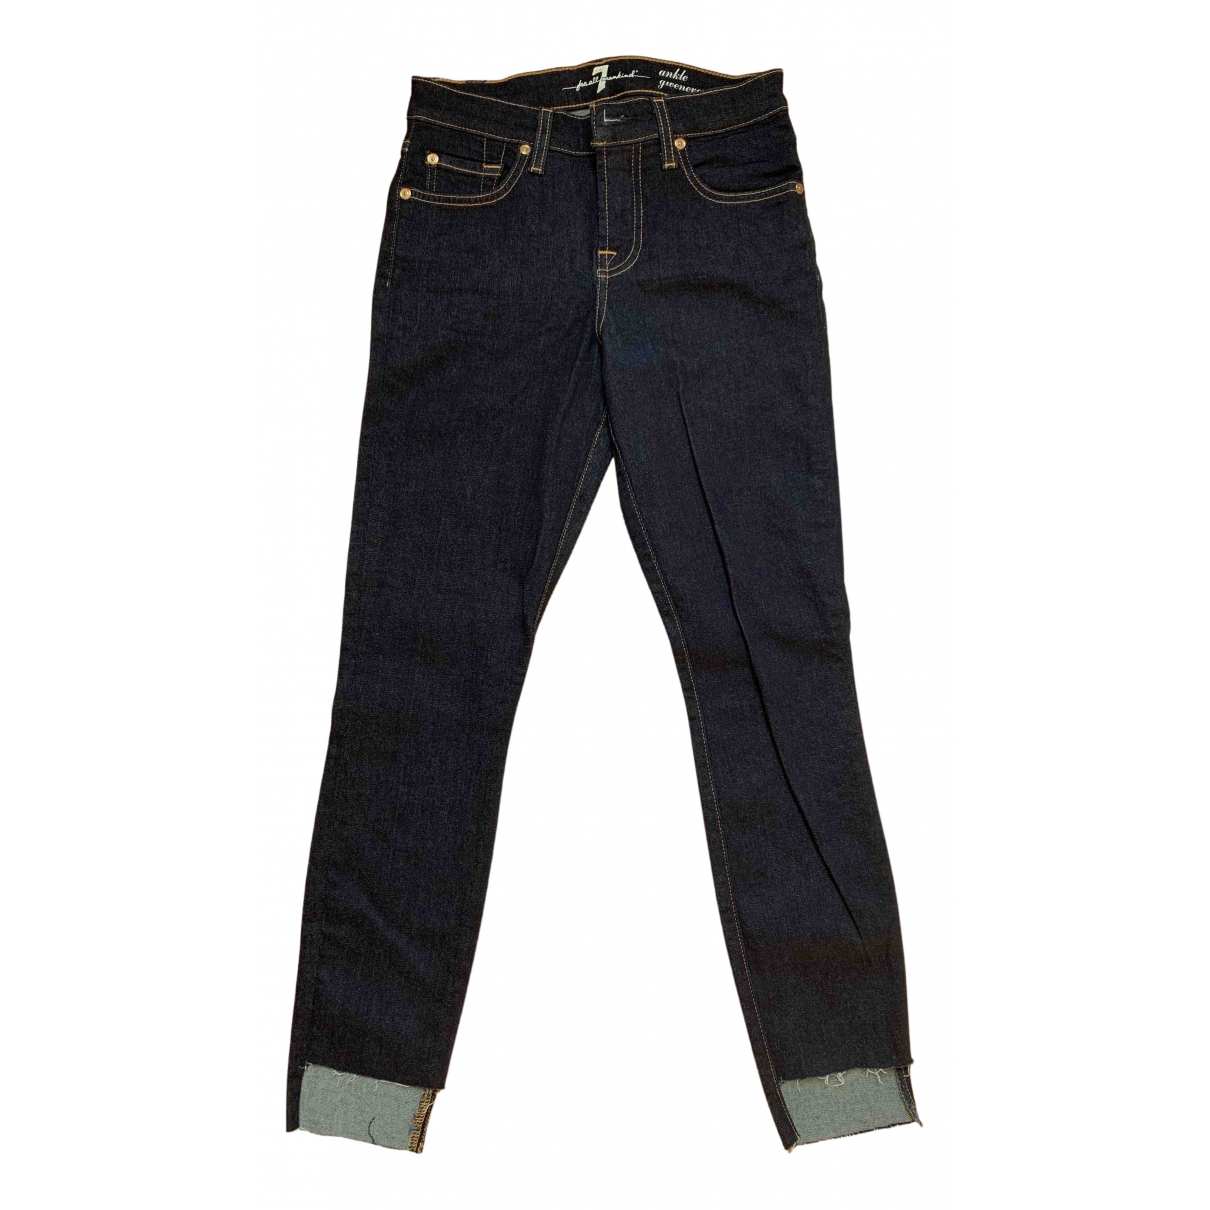 7 For All Mankind N Blue Cotton Jeans for Women 26 US